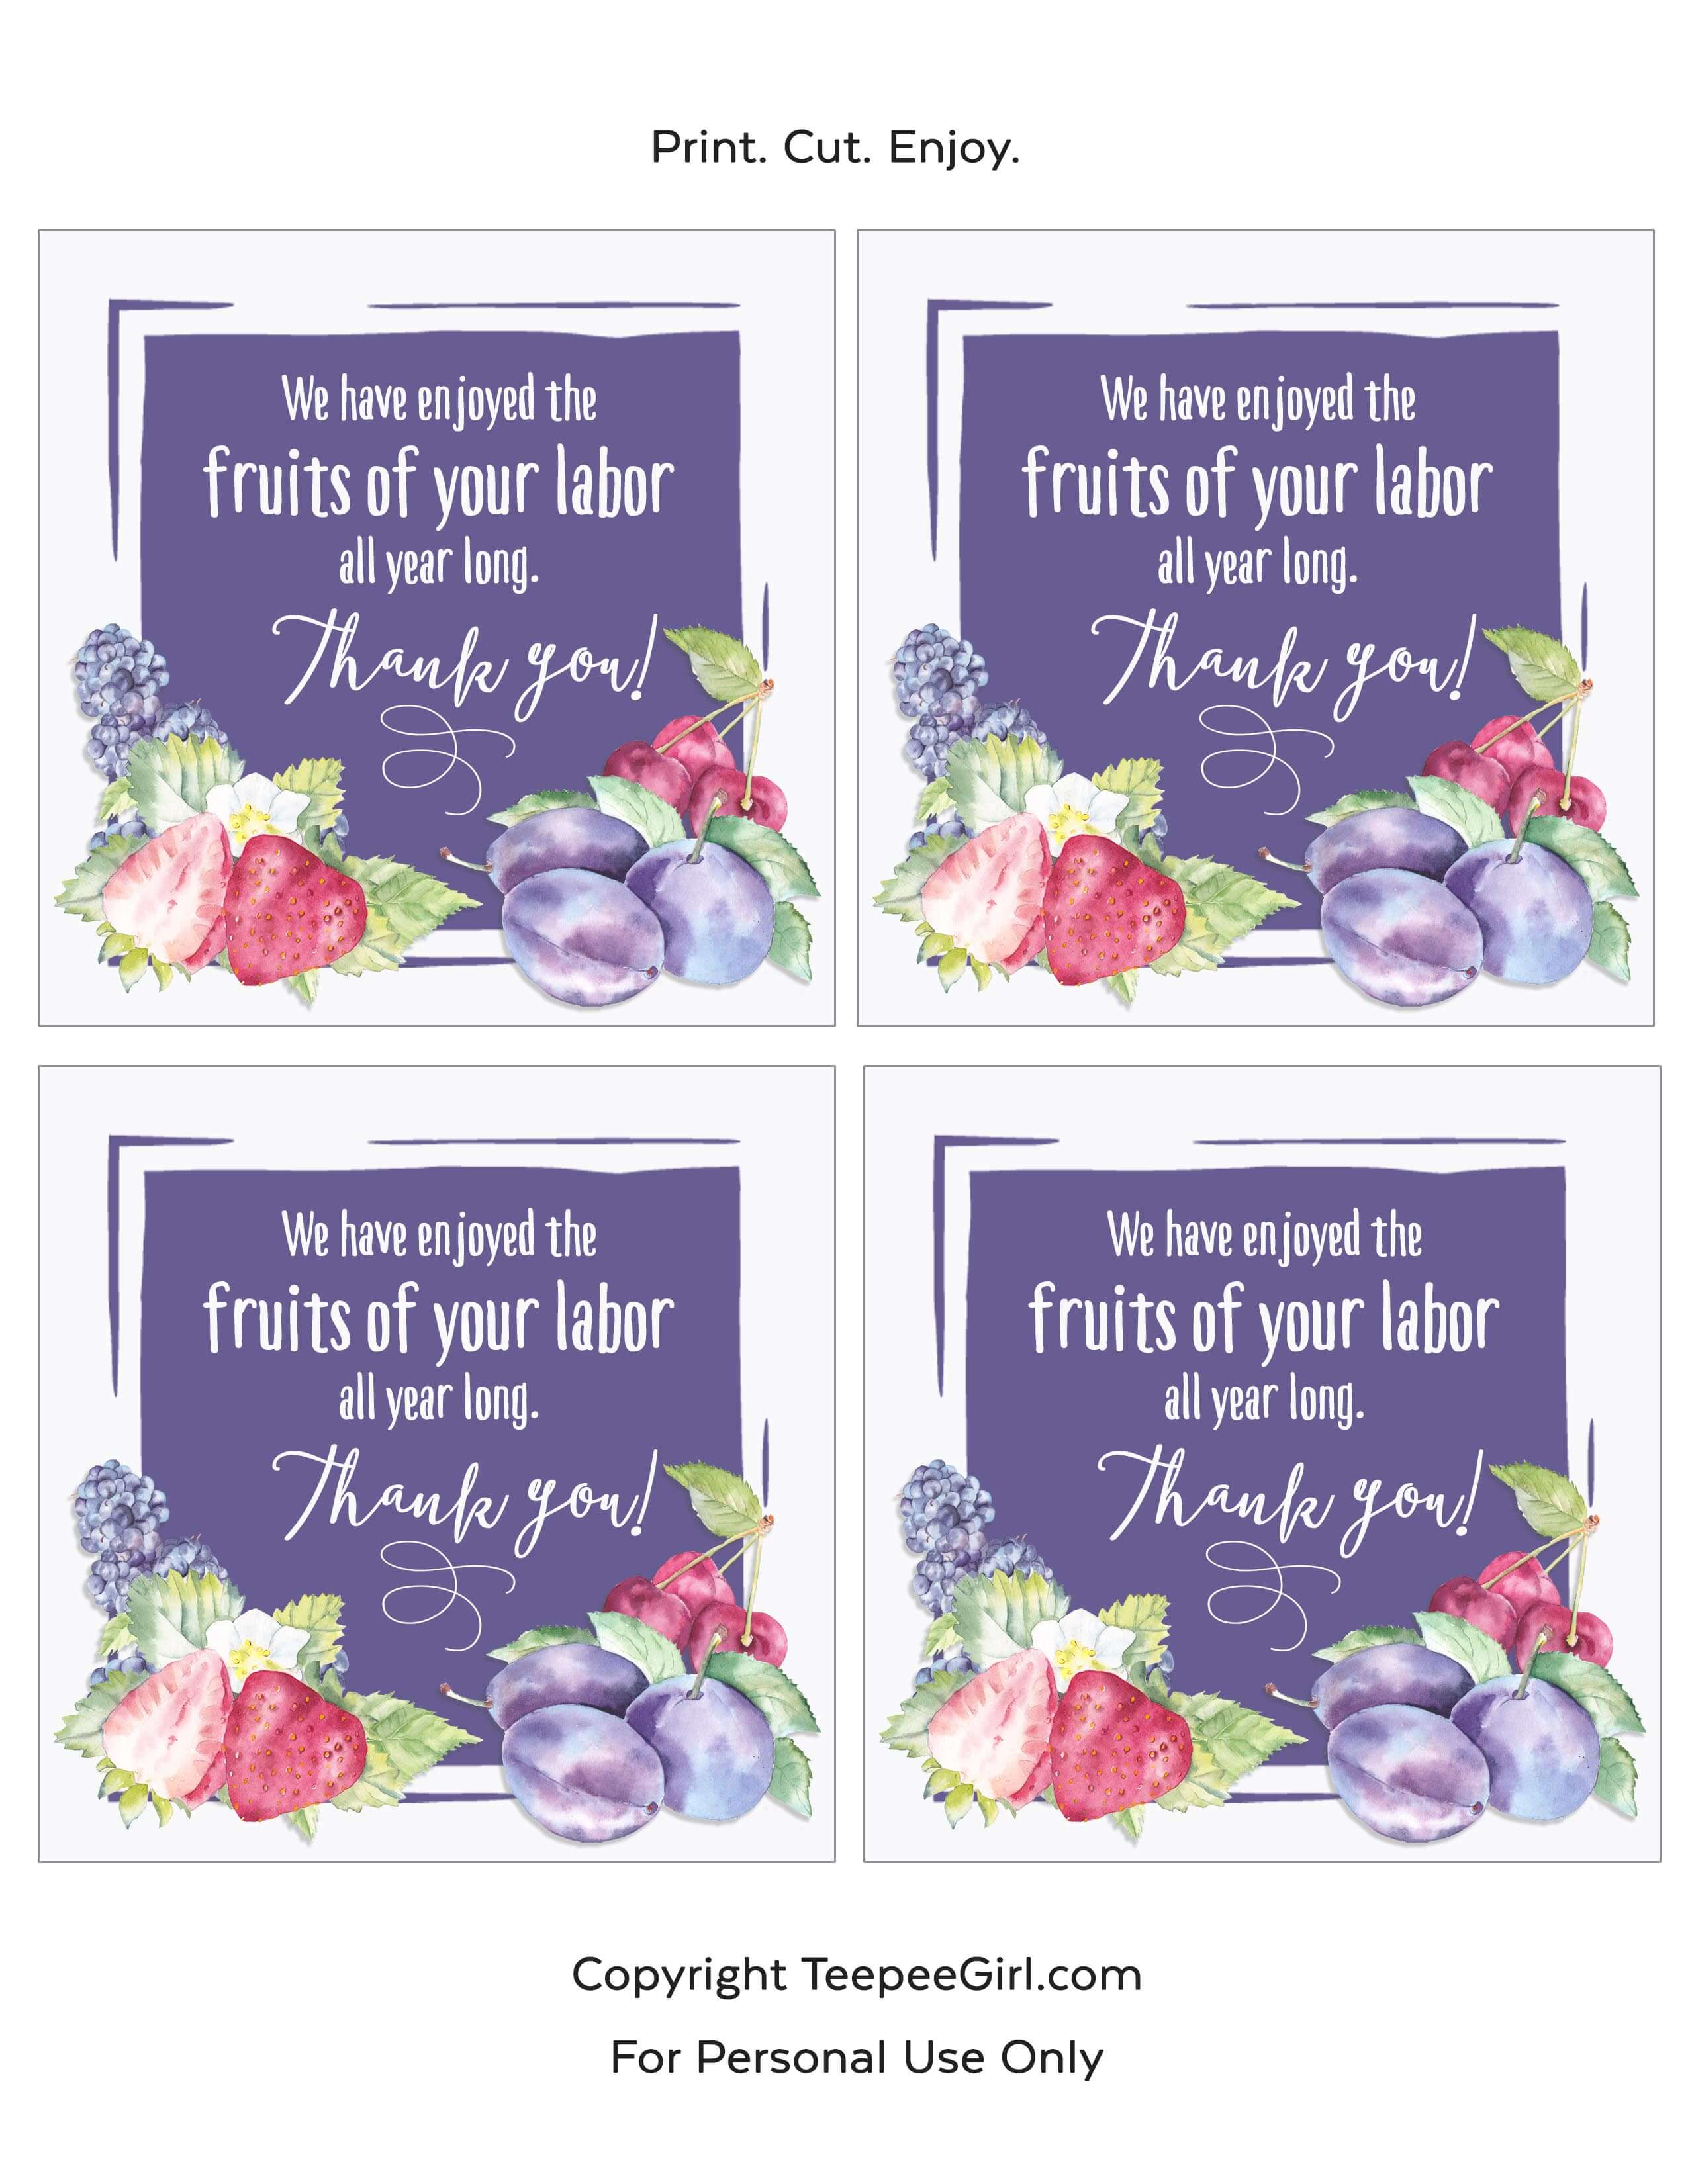 picture regarding Teacher Appreciation Tags Printable referred to as Instructor Appreciation Reward Tag Printable - Teepee Female